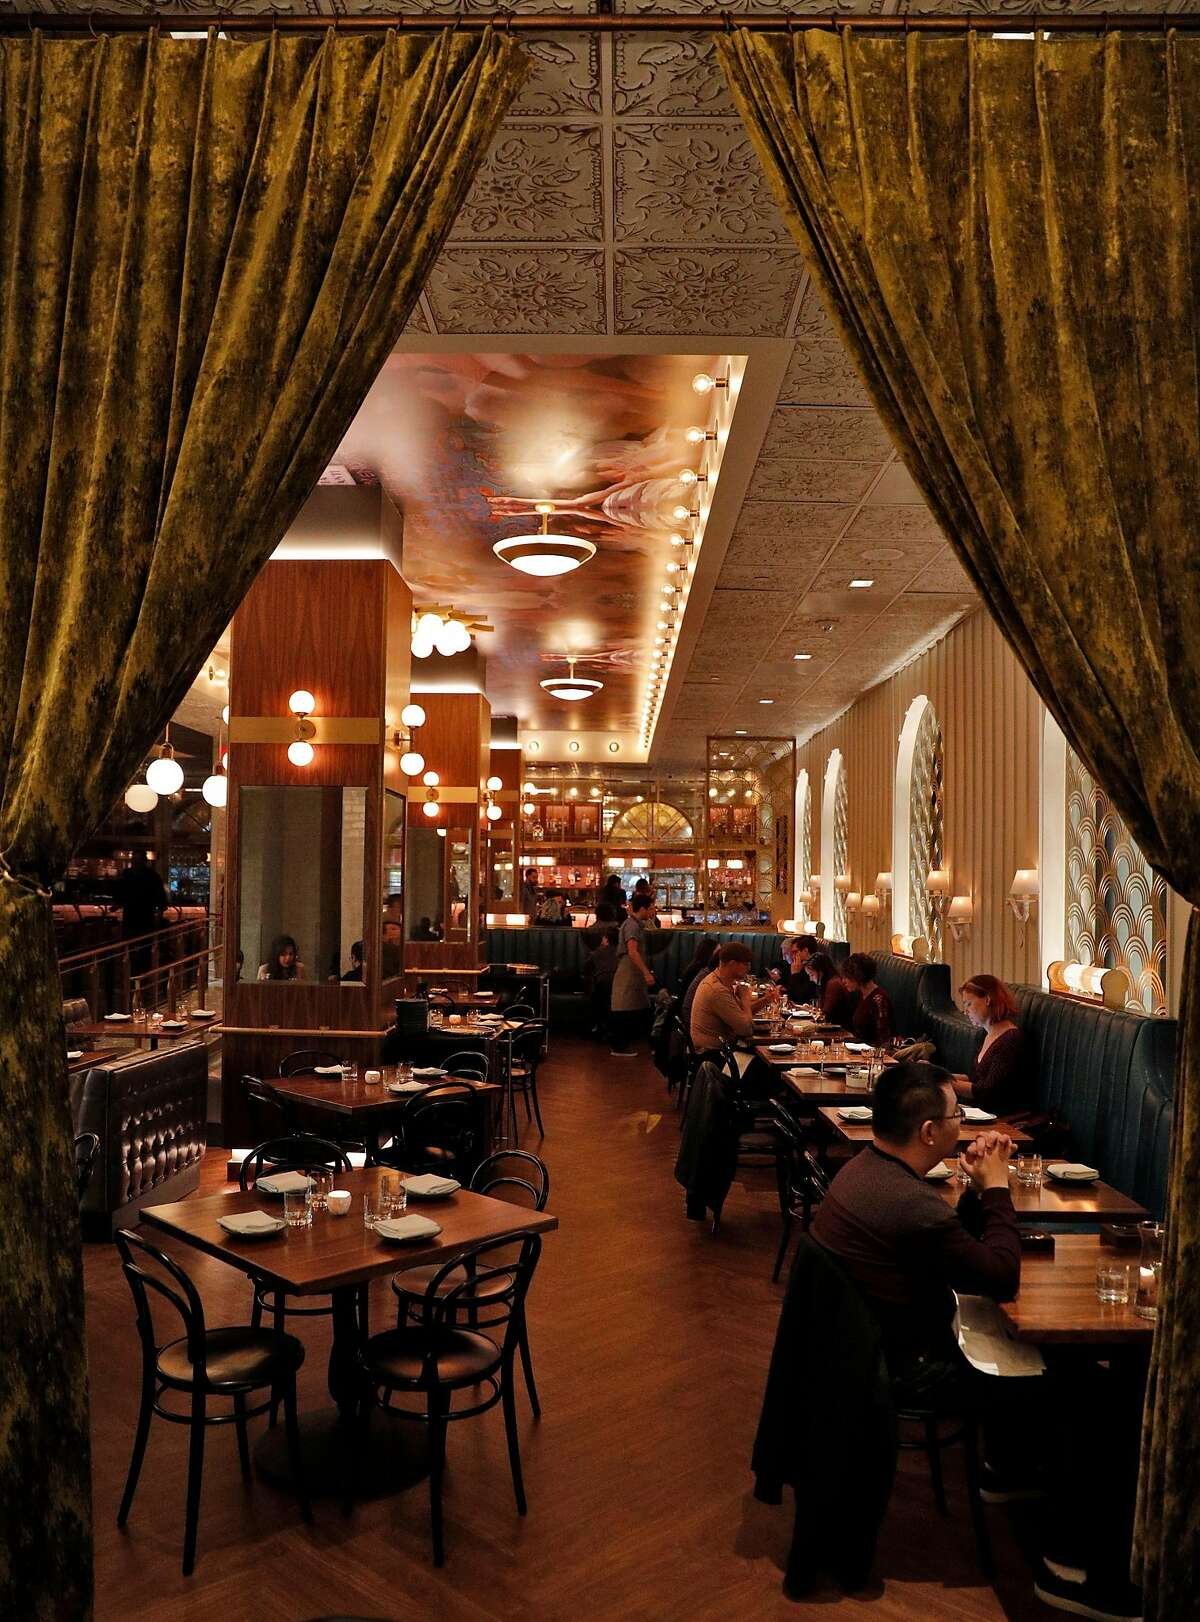 The dining room at the new Gibson restaurant in the redone Bijou Hotel in San Francisco, Calif., on Sunday, December 10, 2017.